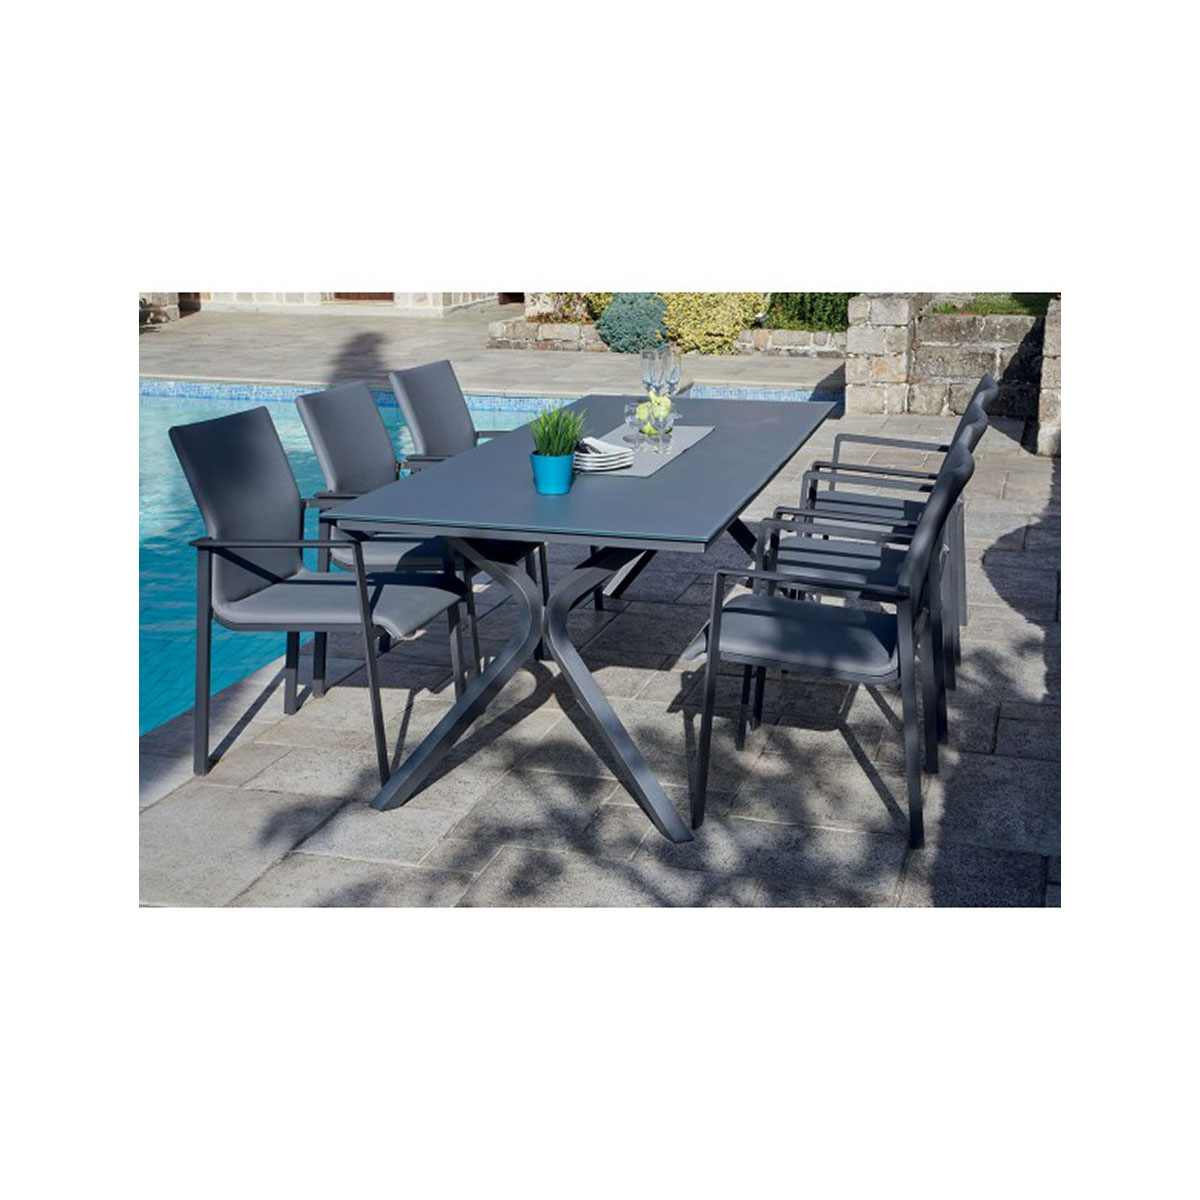 Salon de jardin anthracite avec pied design  (Anthracite)